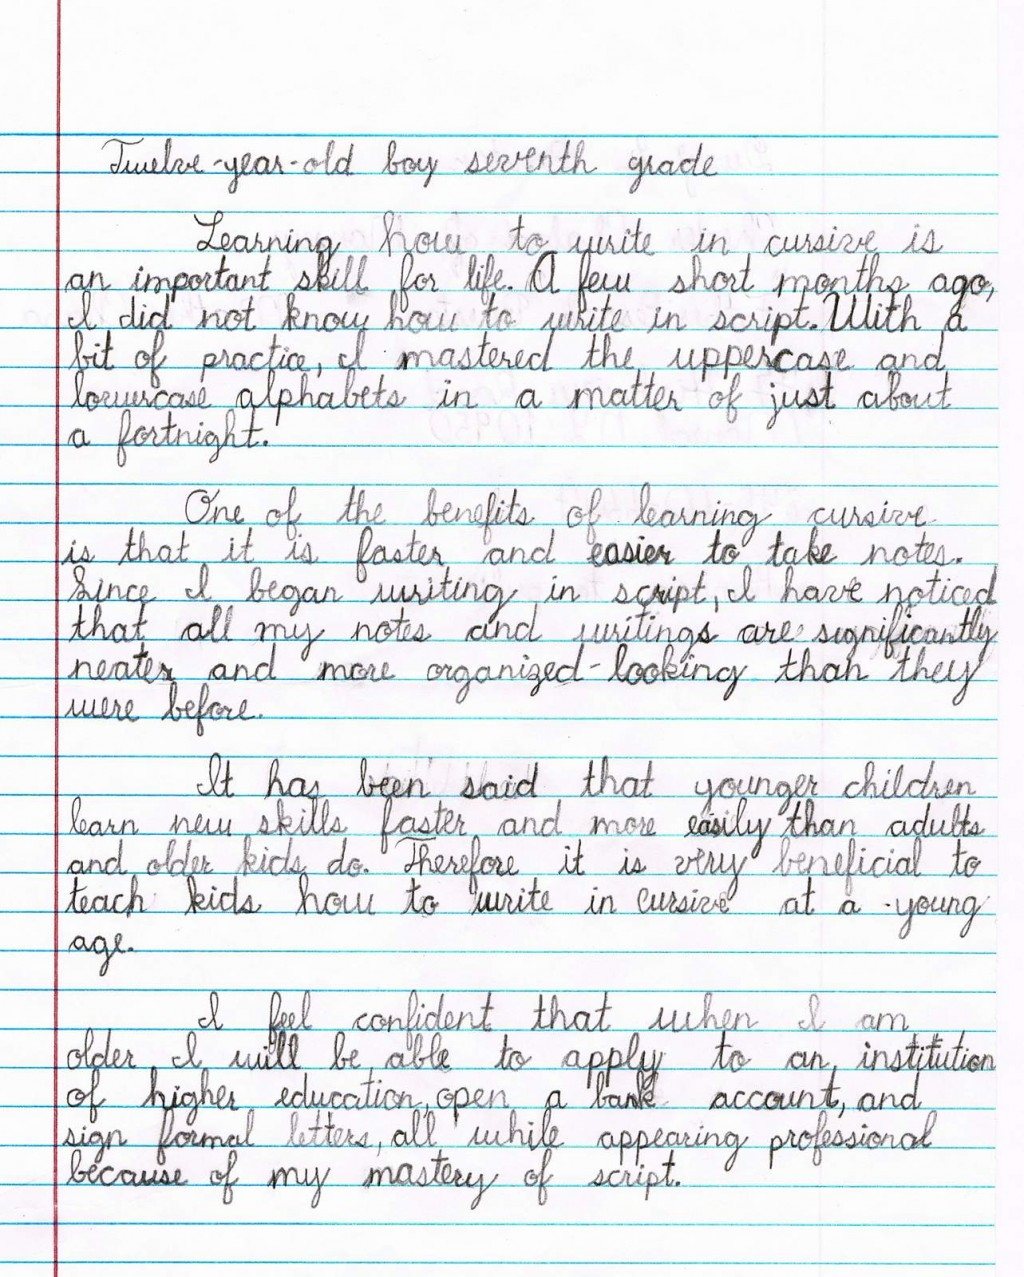 014 Ep 150609965qu003d100 Essay On Handwriting Fearsome Short Importance Of Good In Hindi Gujarati Large